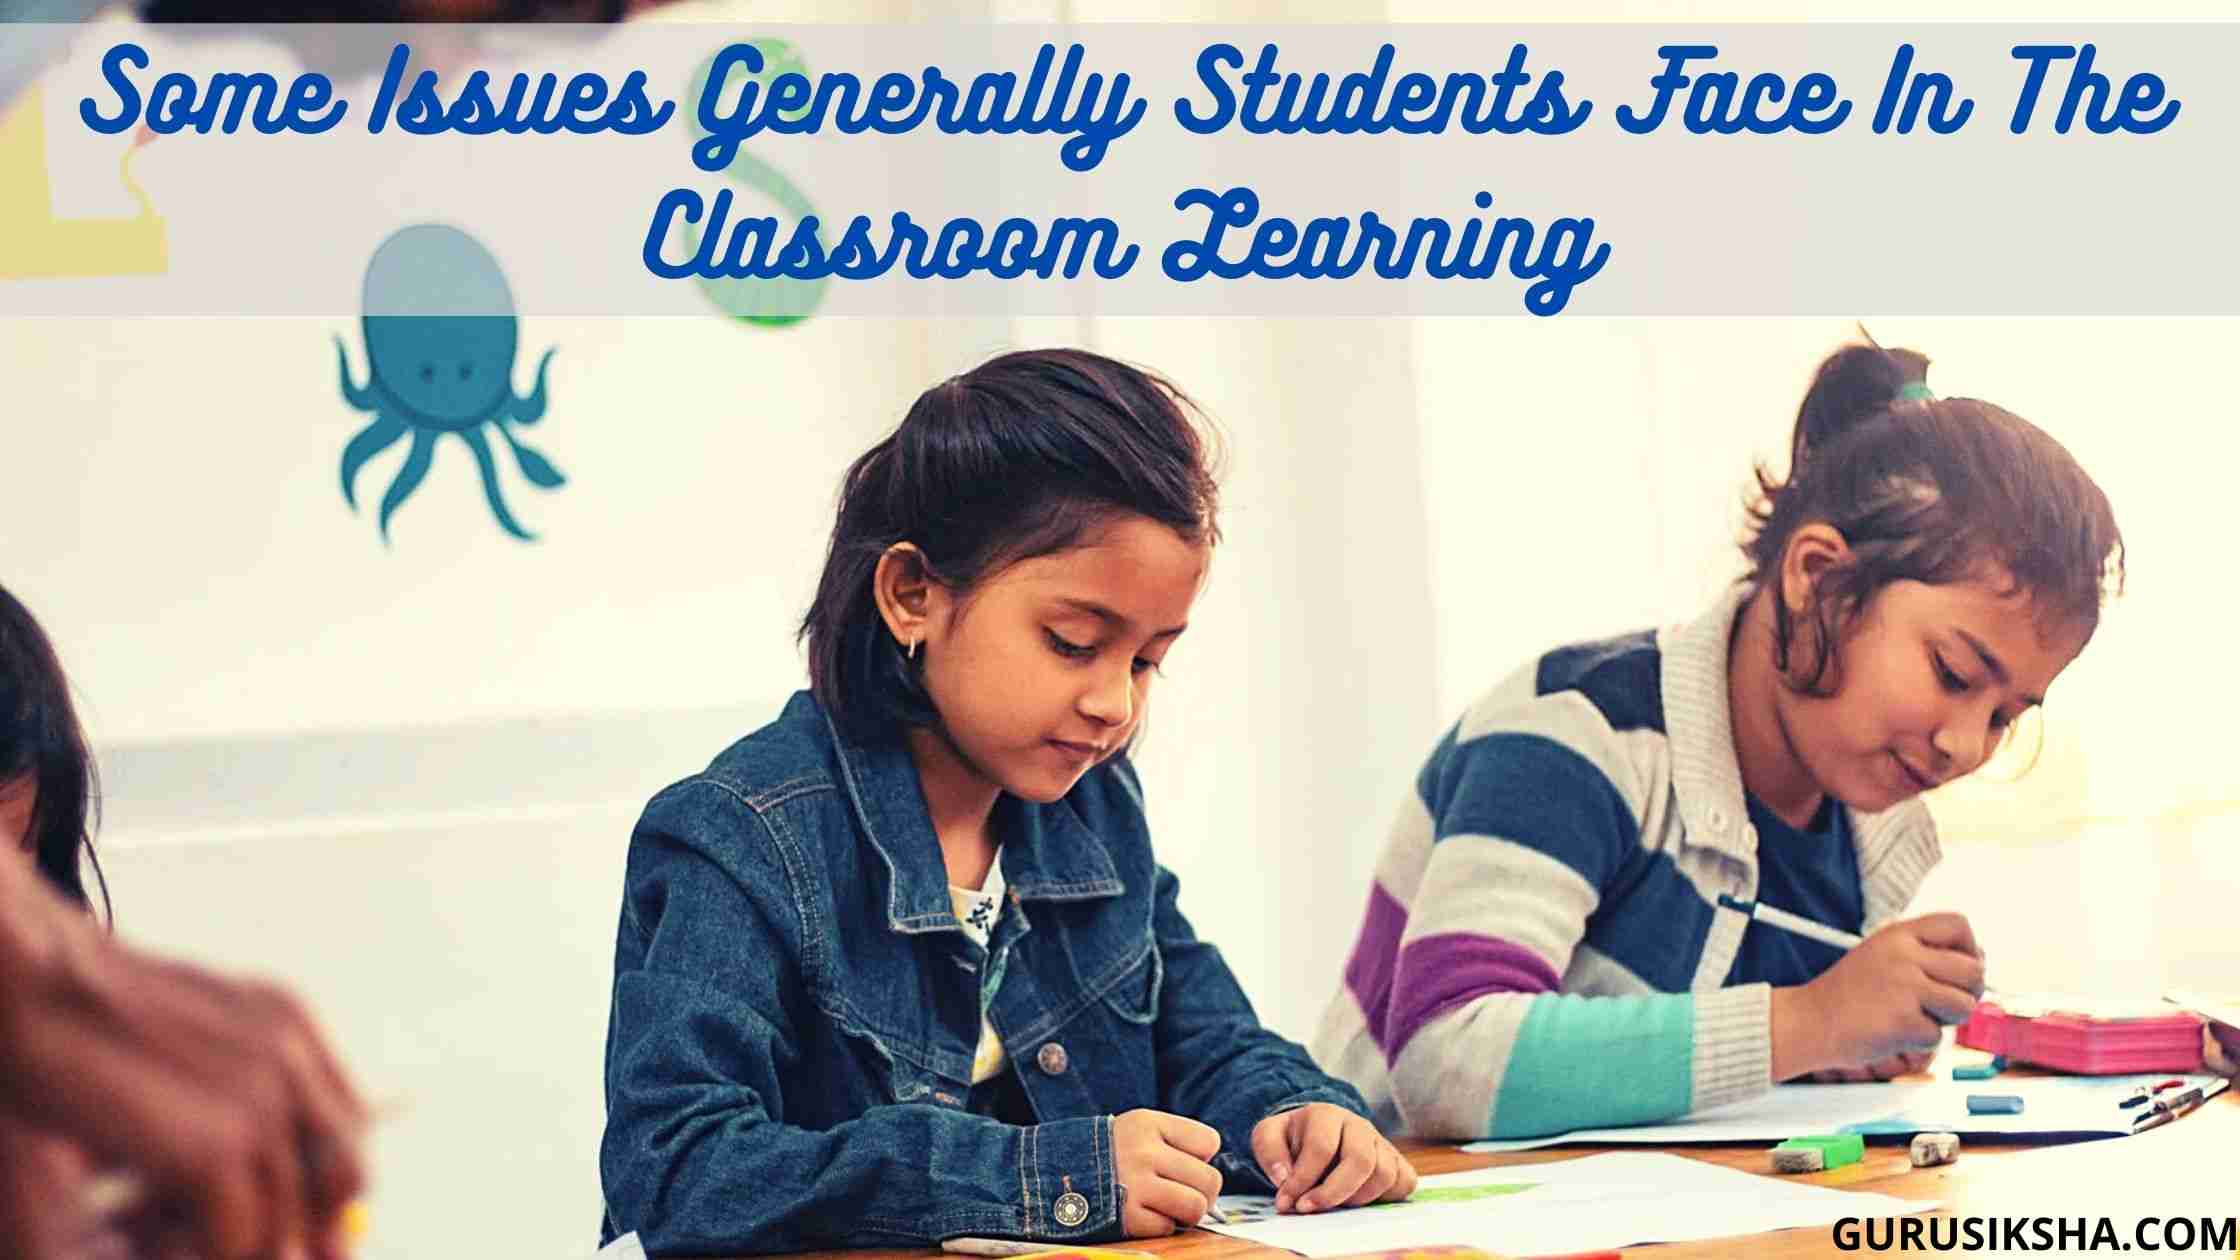 What Issues Generally Students Face In The Classroom Learning?